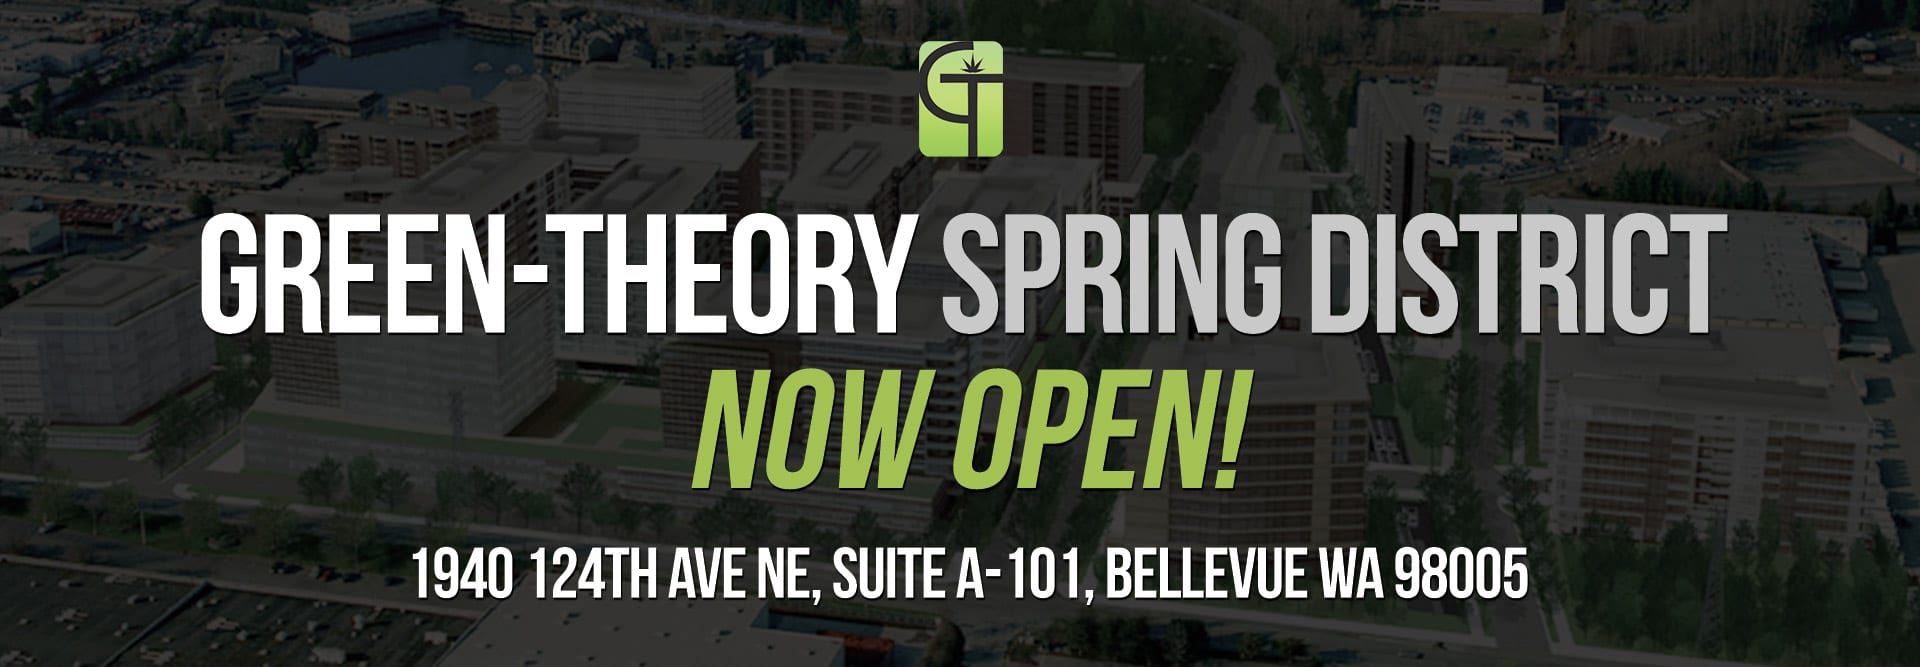 green-theory-spring-district-now-open